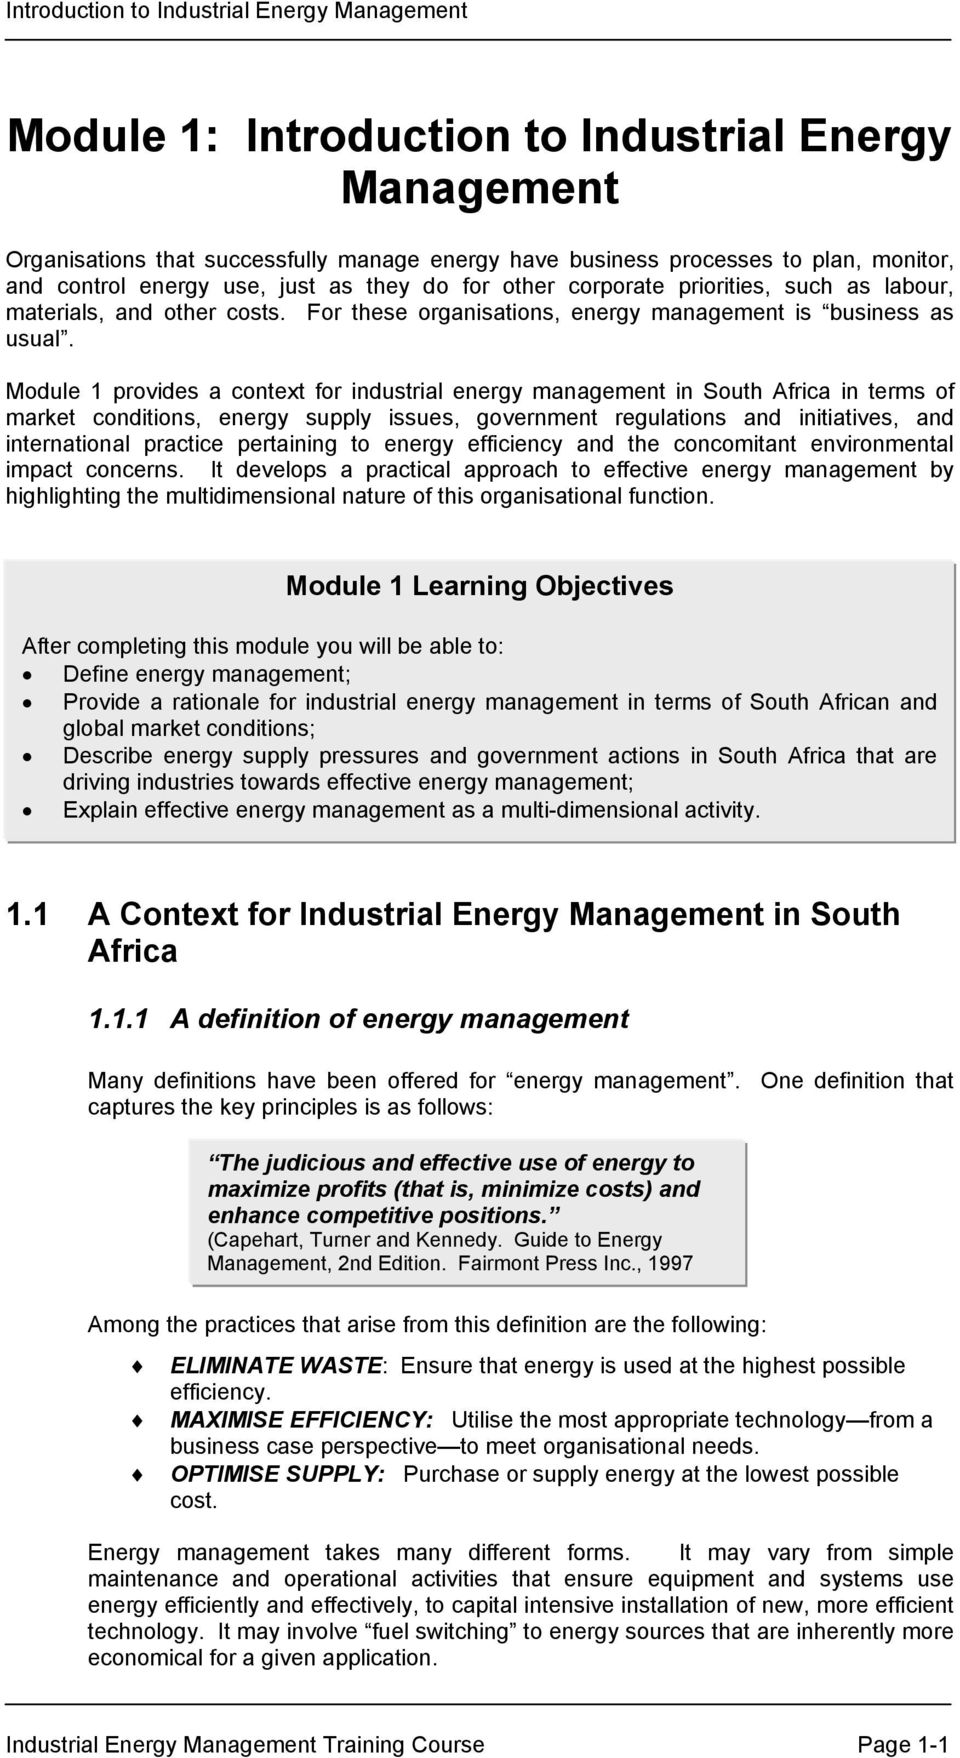 Module 1 provides a context for industrial energy management in South Africa in terms of market conditions, energy supply issues, government regulations and initiatives, and international practice